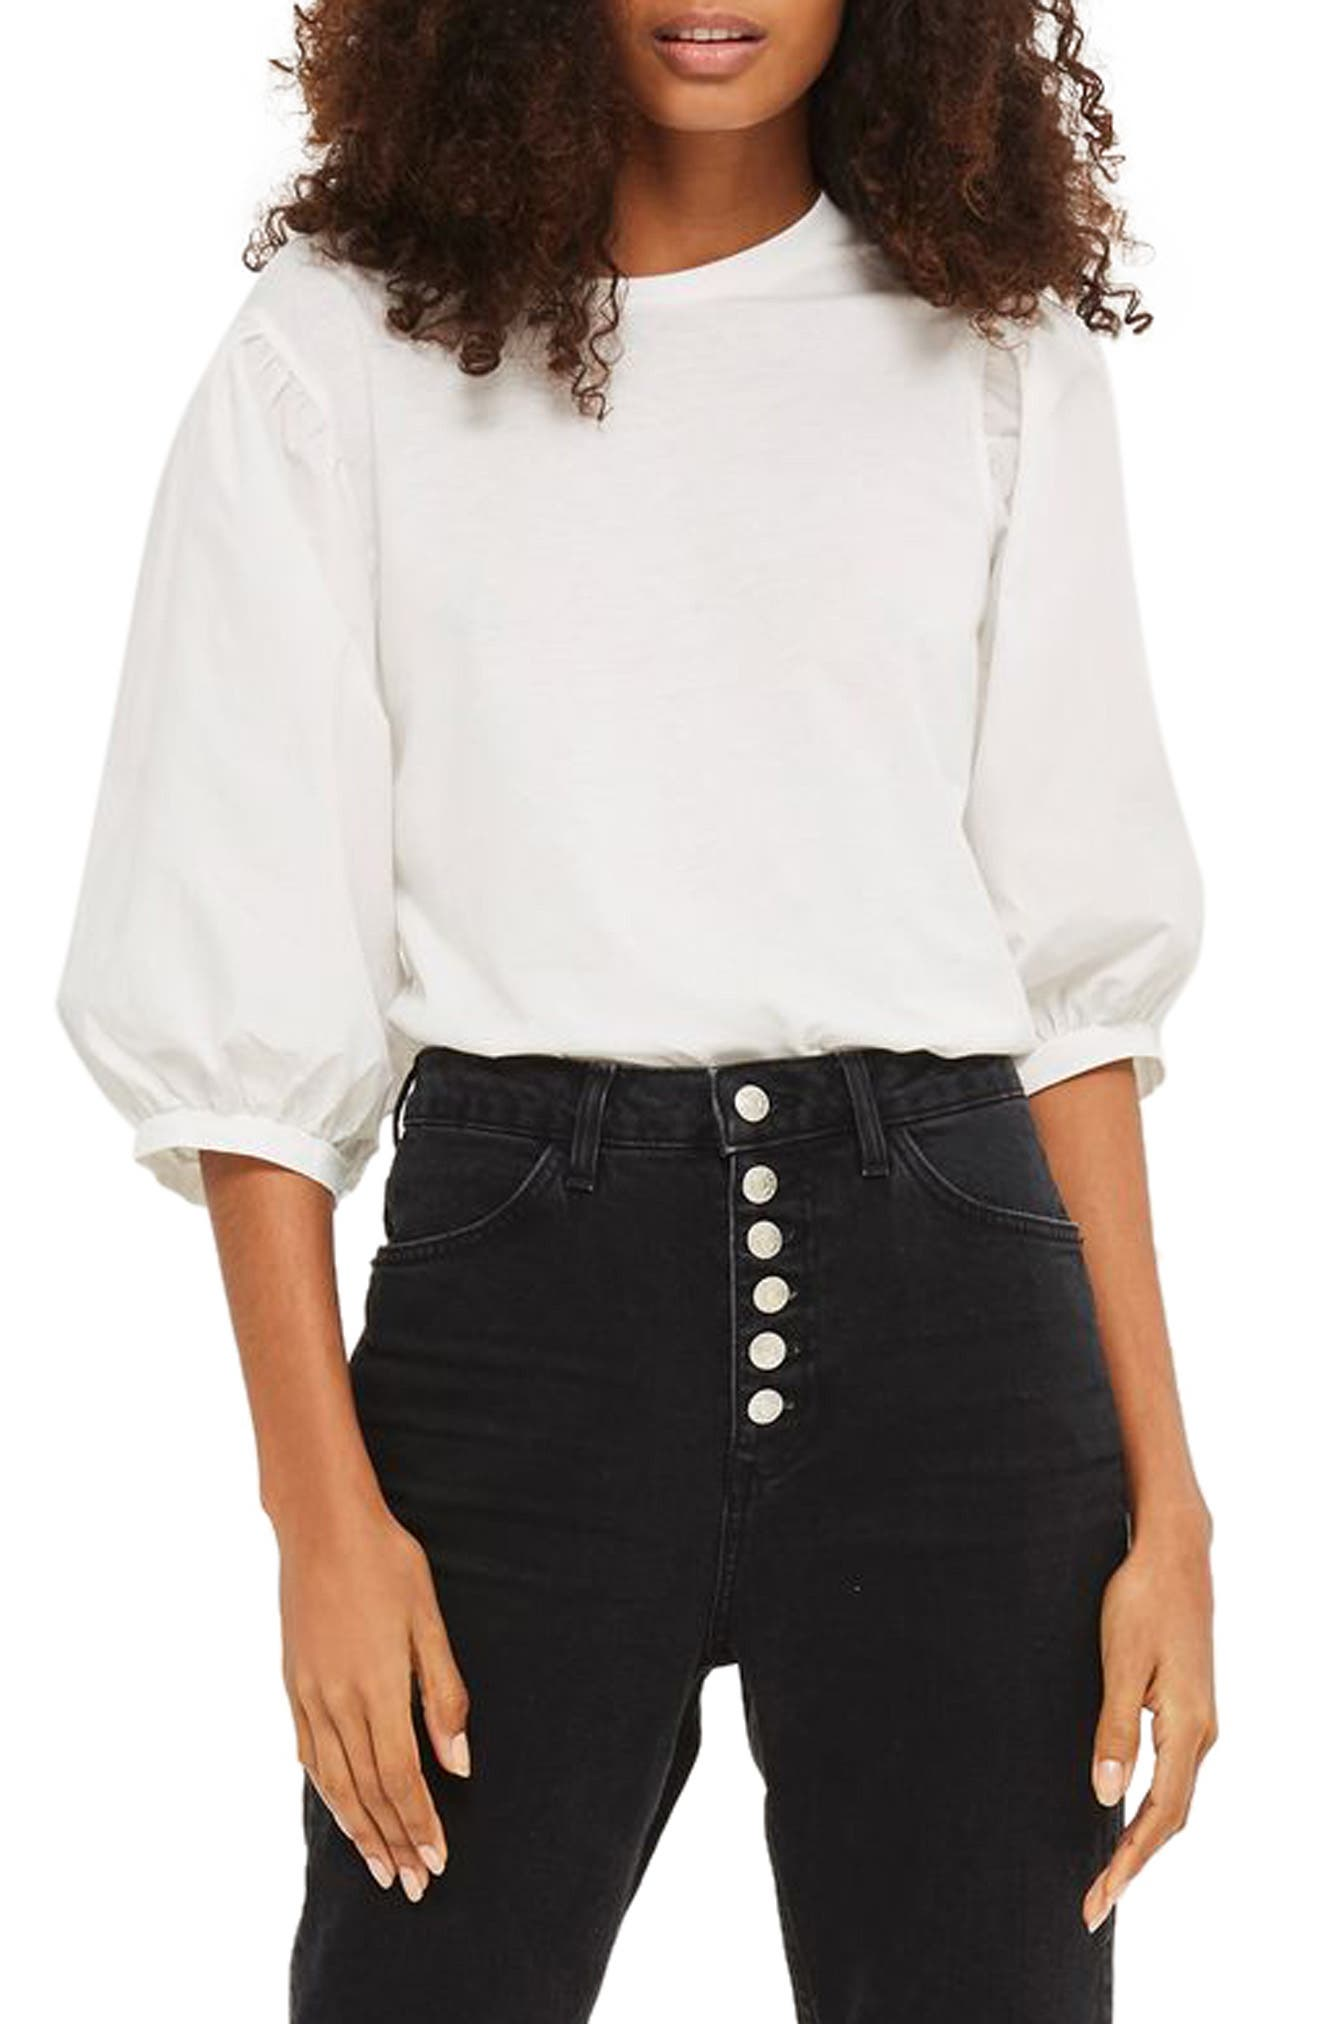 Topshop Balloon Sleeve Tee